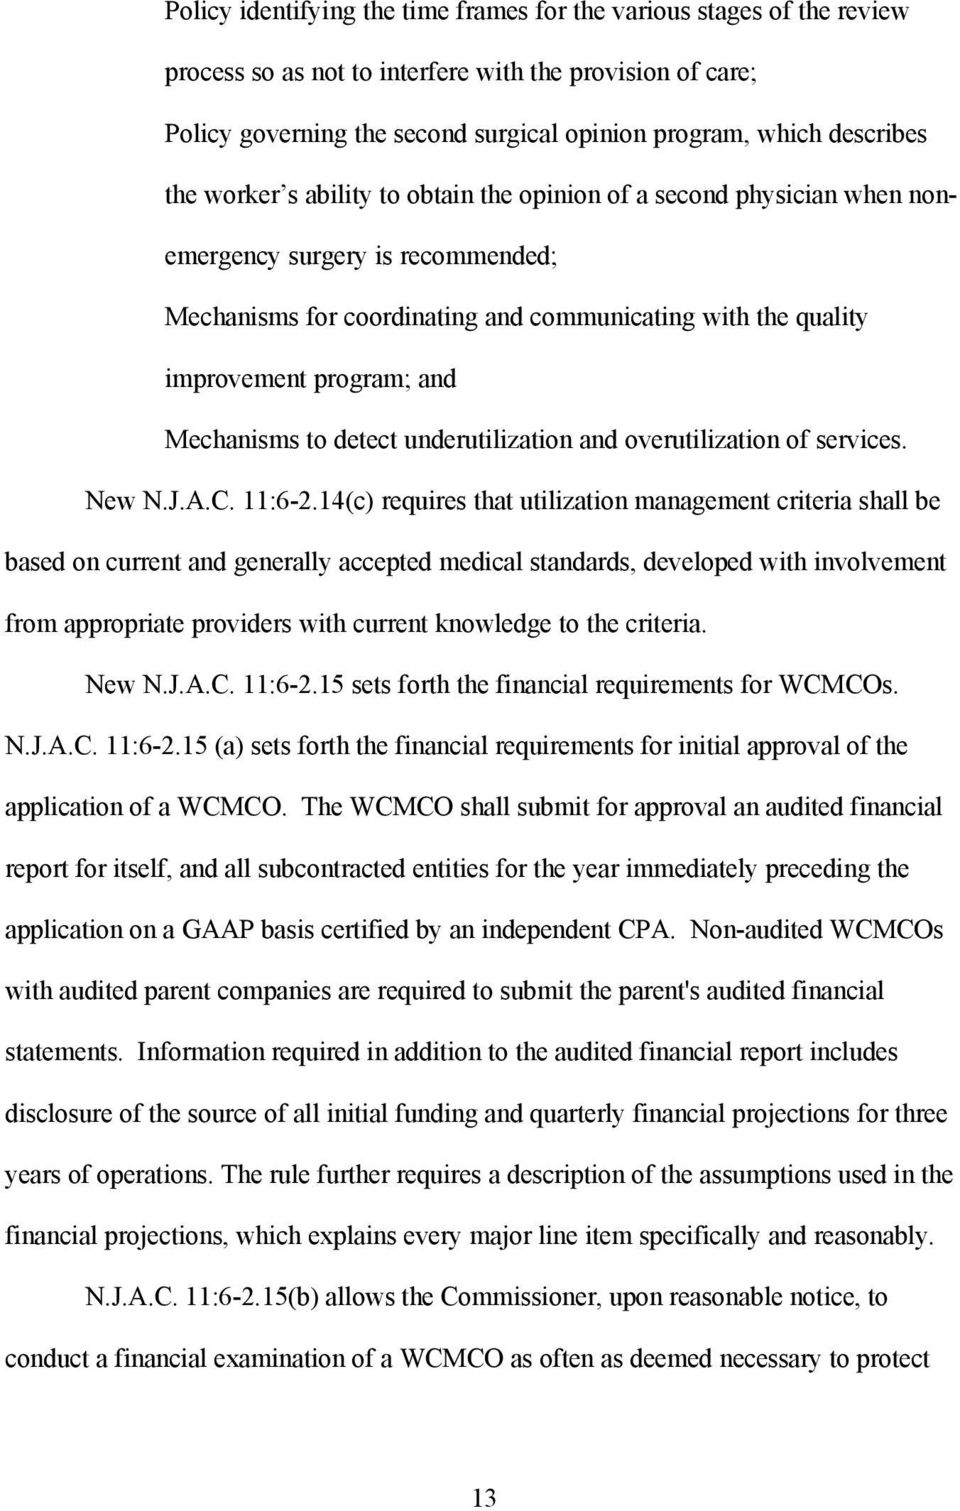 program; and Mechanisms to detect underutilization and overutilization of services. New N.J.A.C. 11:6-2.